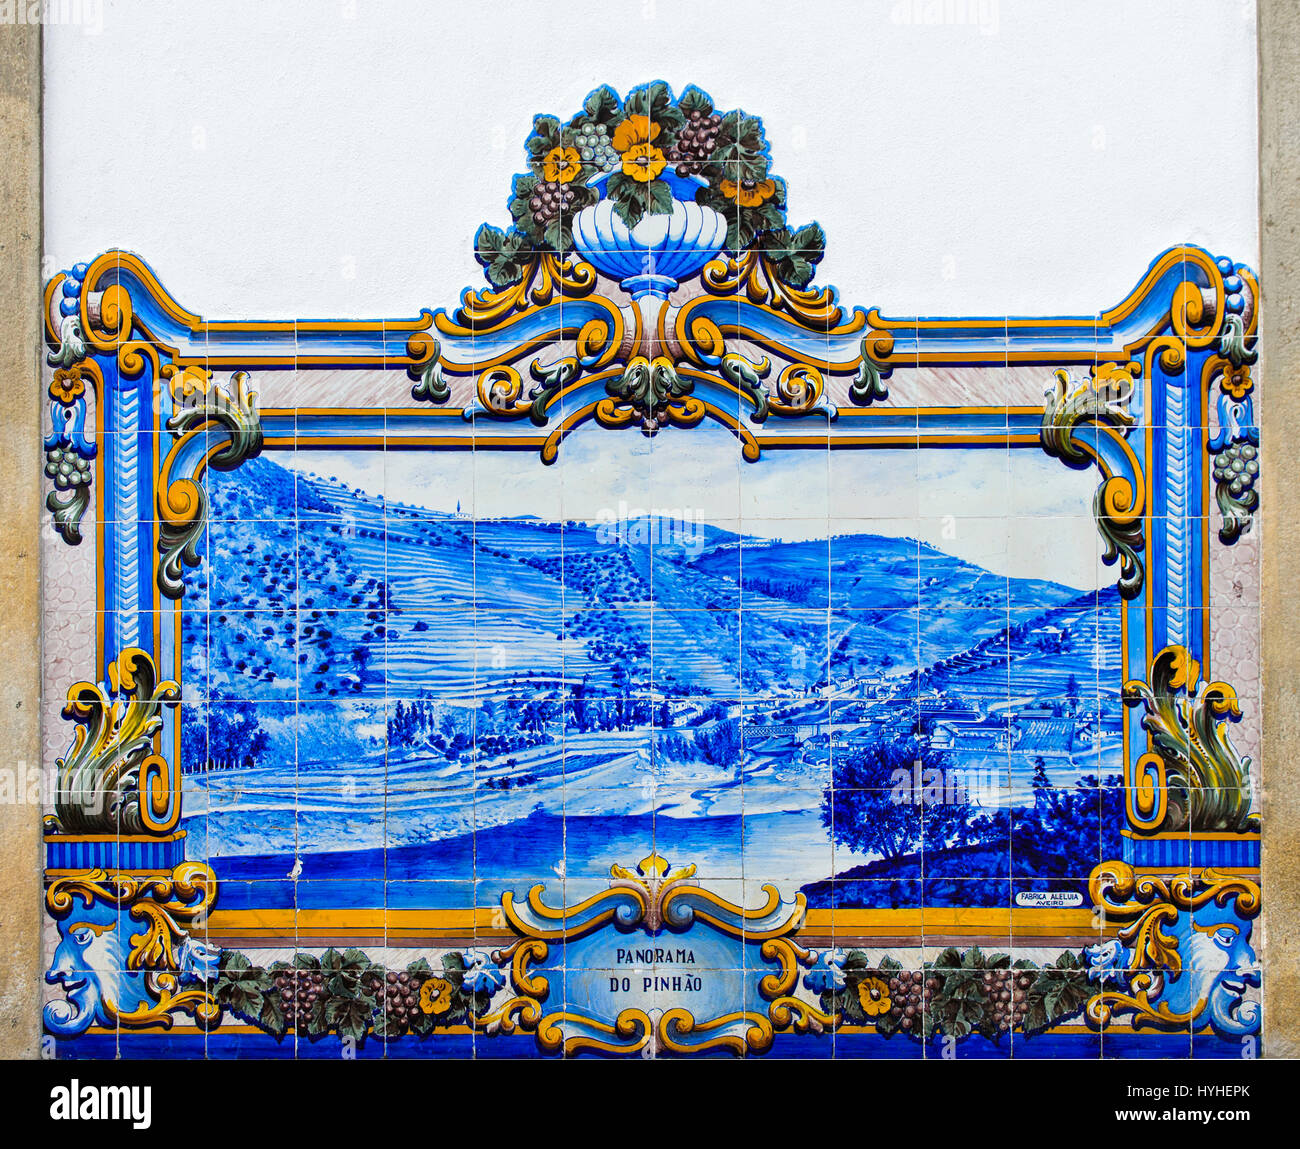 Historic ceramic tiles, azulejos, depicting the panorama of Pinhao with river and vineyards, Pinhao, Douro Valley, - Stock Image